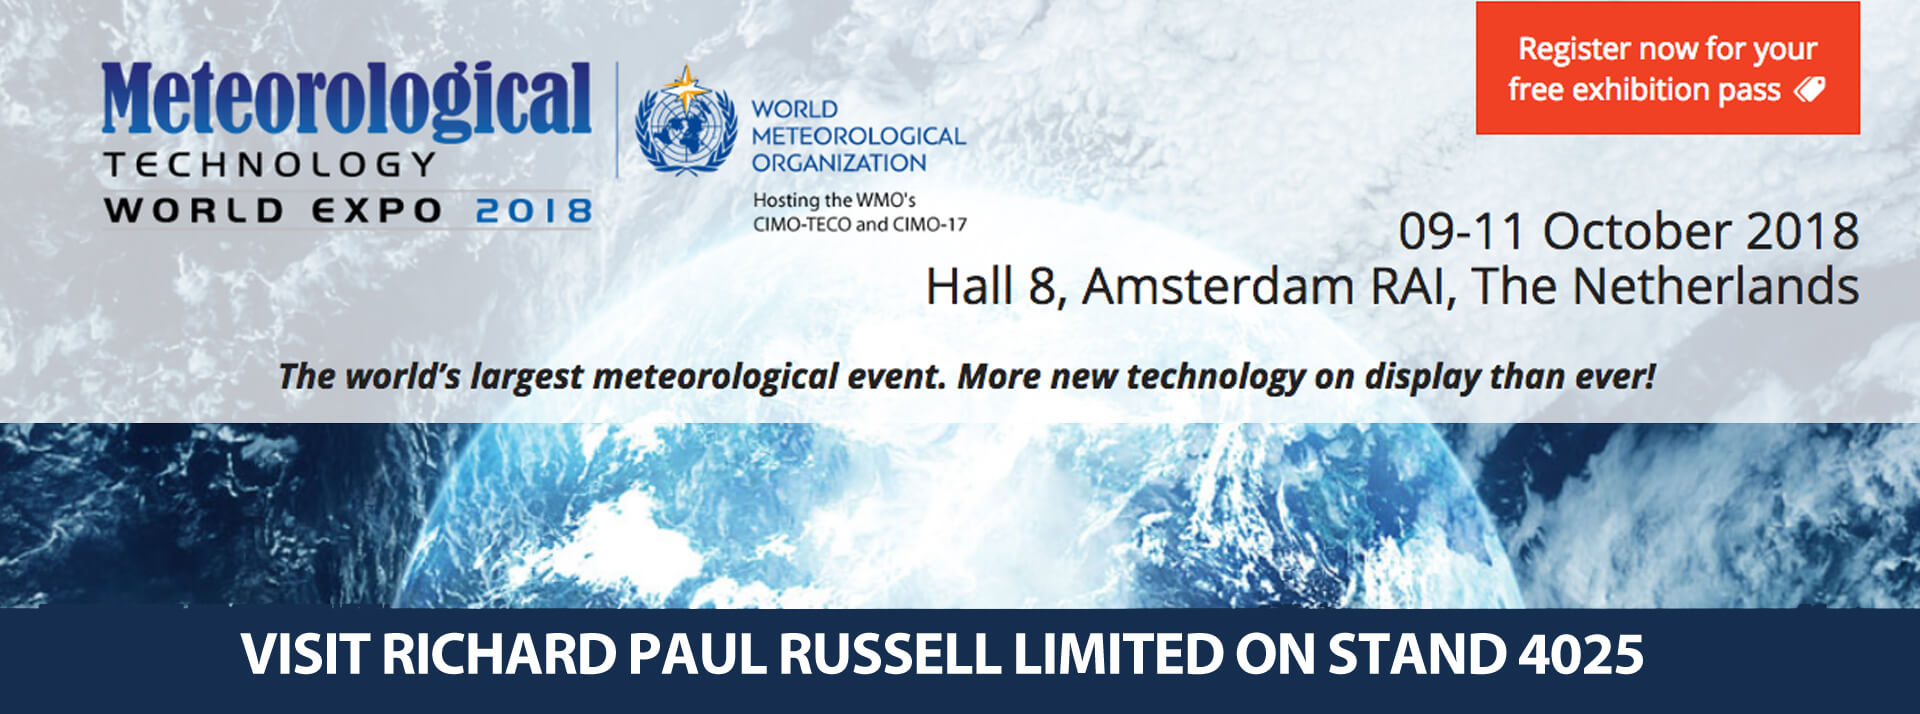 Meteorological Technology World Expo 2018 »